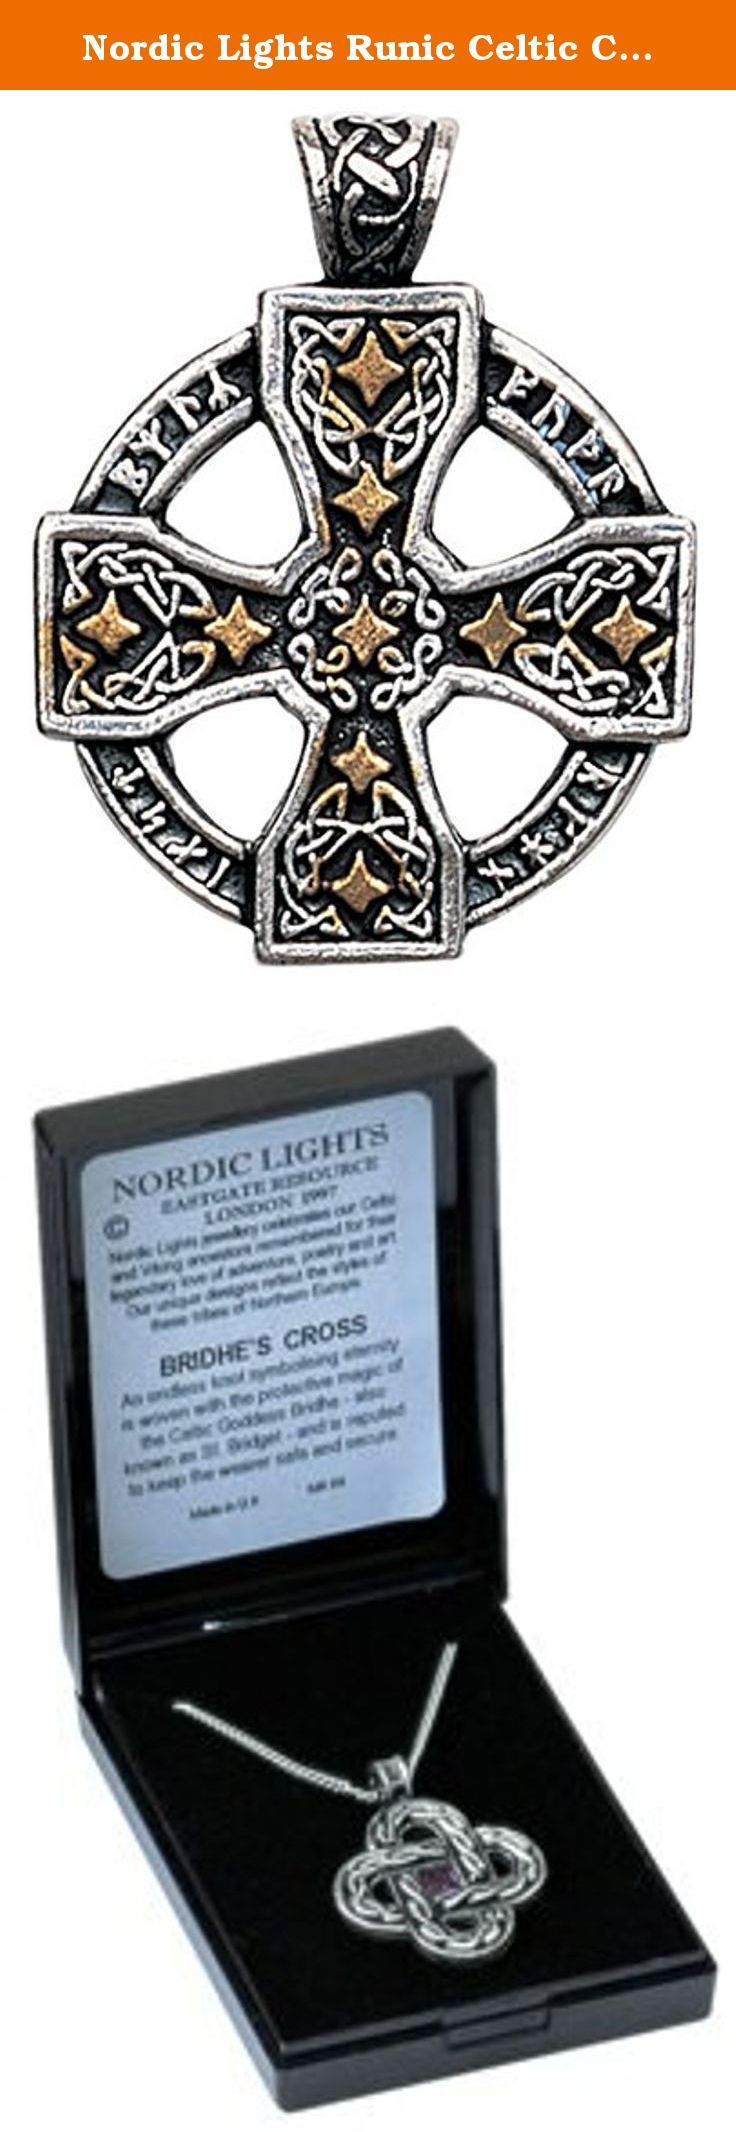 """Nordic Lights Runic Celtic Cross Pendant Amulet Talisman for Knowledge and Magickal Ability. The Nordic Lights collection is an unsurpassed variety of authentic Viking & Celtic jewelry designed by Maelstrom Odssonn, who is acknowledged in Nordic and Germanic art. The jewelry is produced in pewter and enhanced with Gold and Swarovski Crystals. Maelstrom has crafted a range of true beauty and has carefully researched the meanings. The pendants are provided with a matching 22"""" chain and..."""